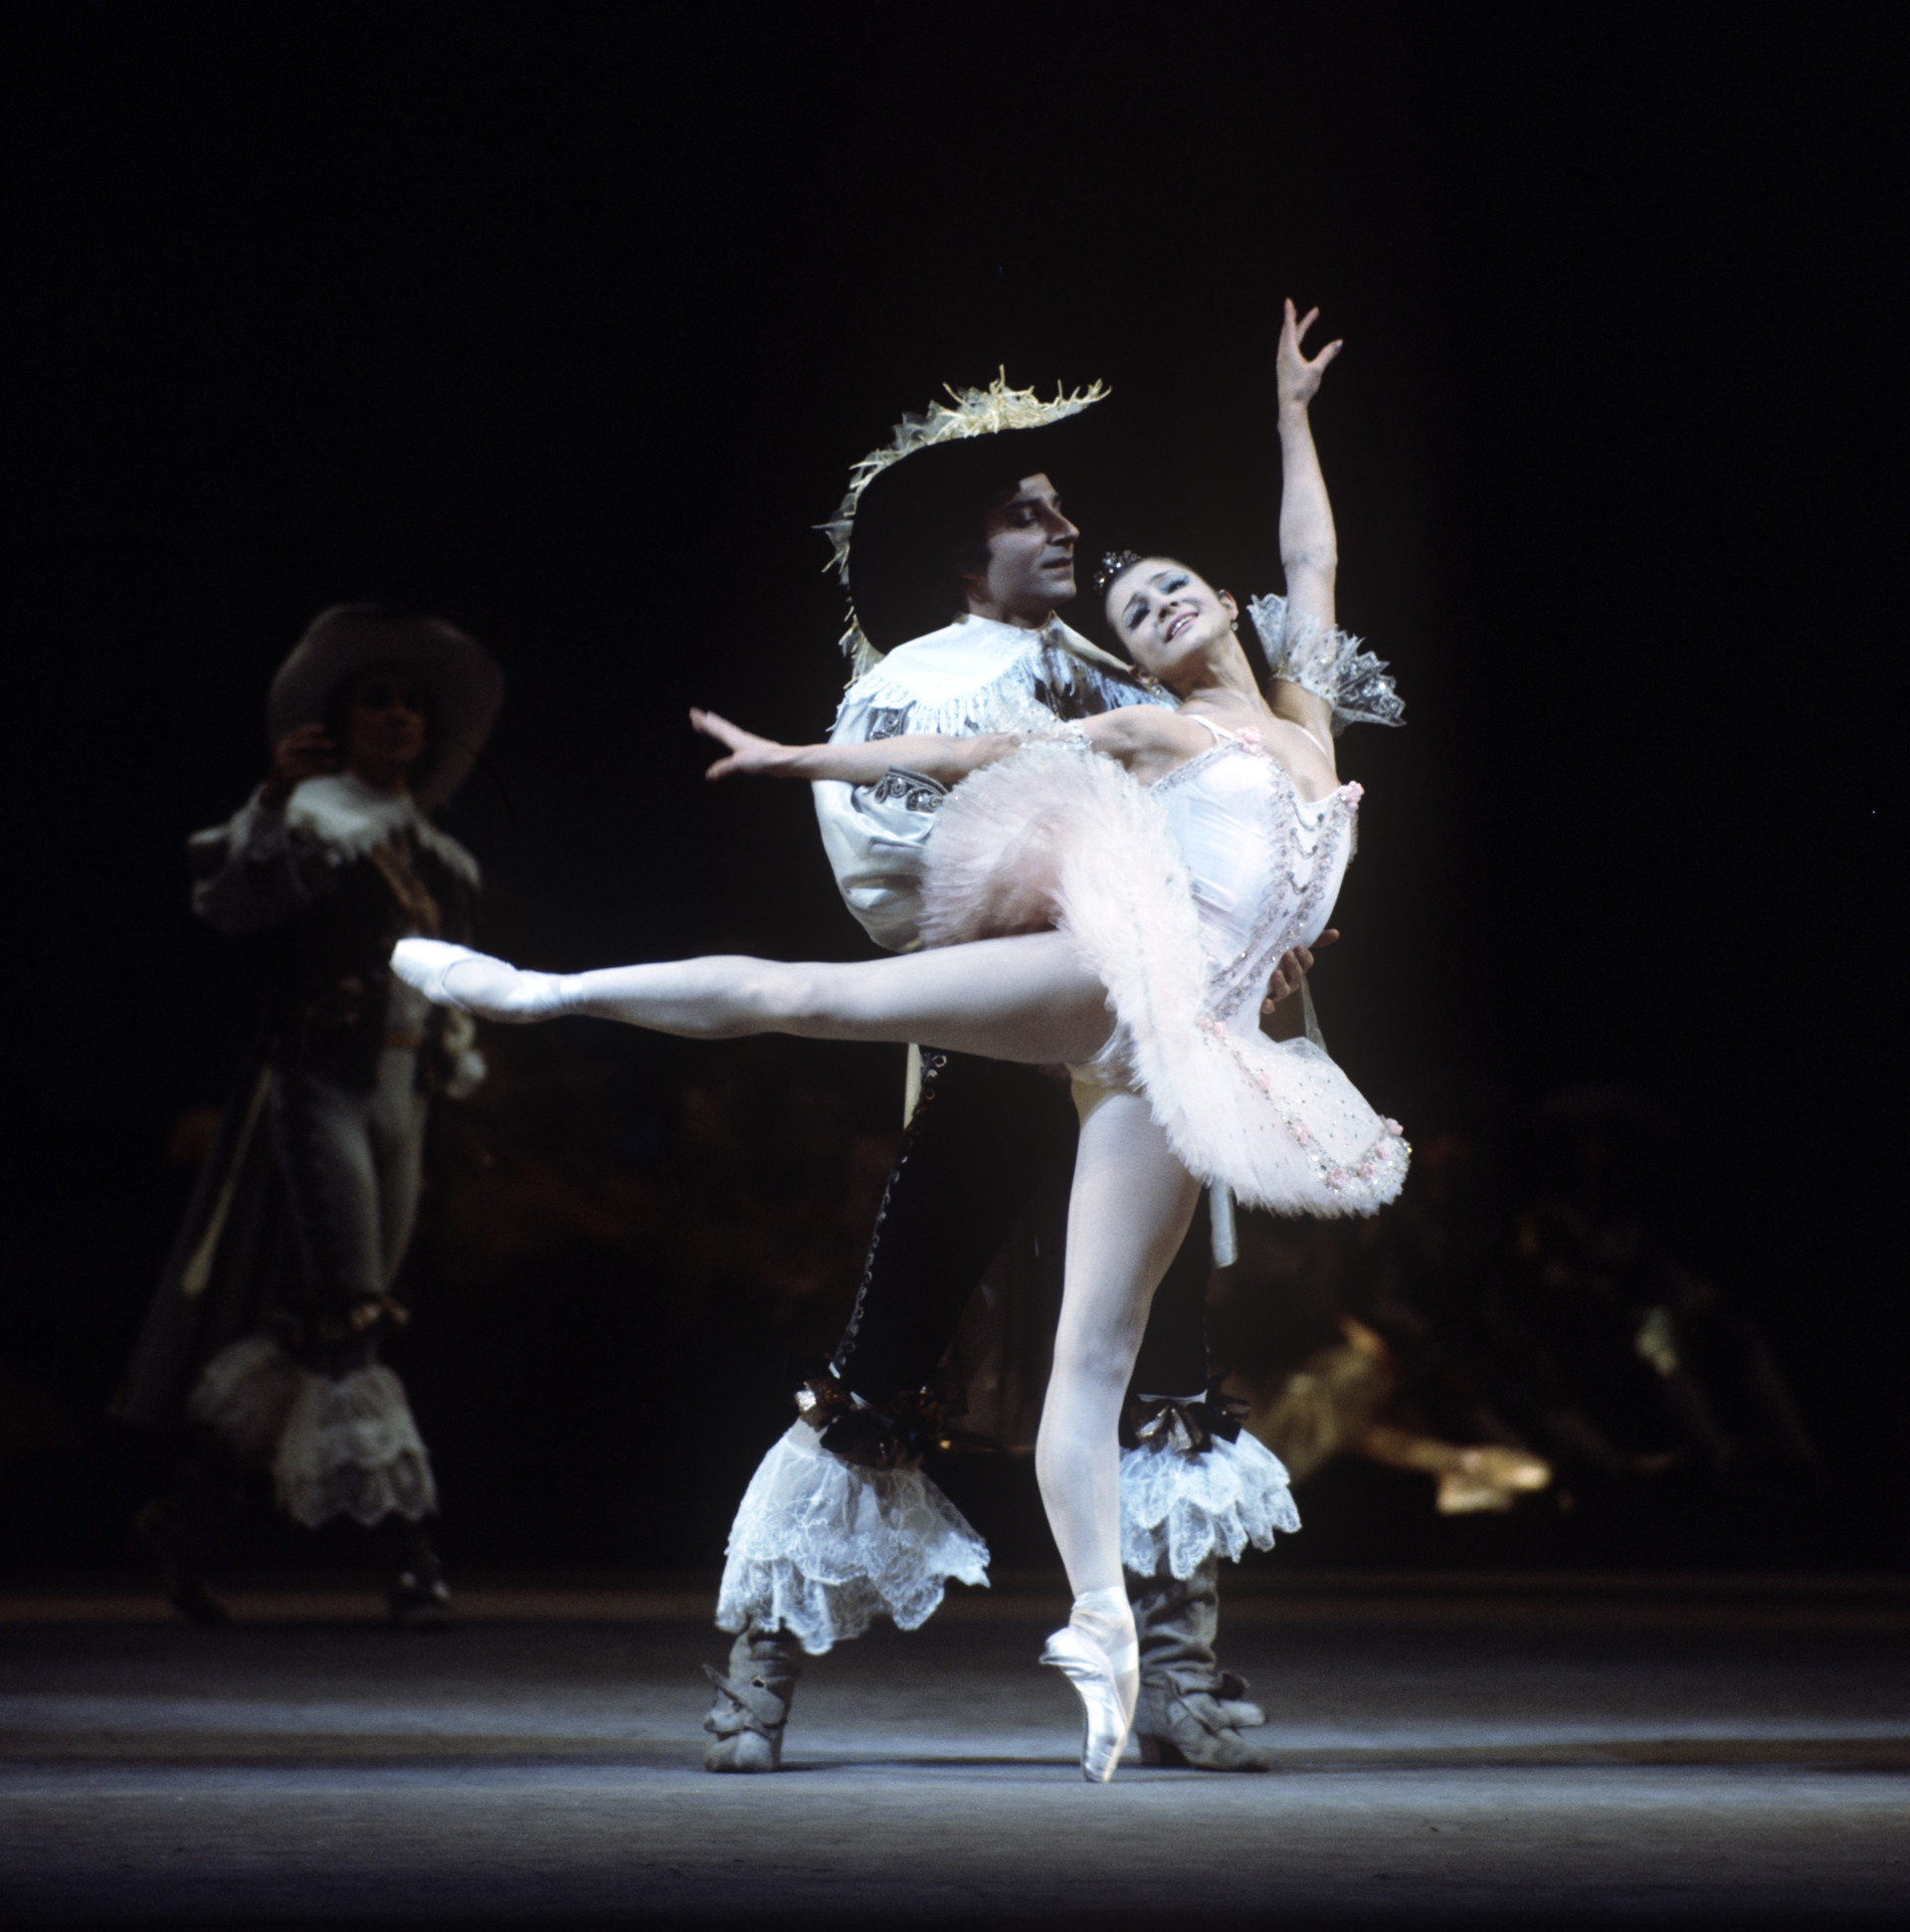 Yekaterina Maksimova as Princess Aurora and Azary Plisetsky as Suitor in a scene from Pyotr Tchaikovsky's ballet Sleeping Beauty. 1978.